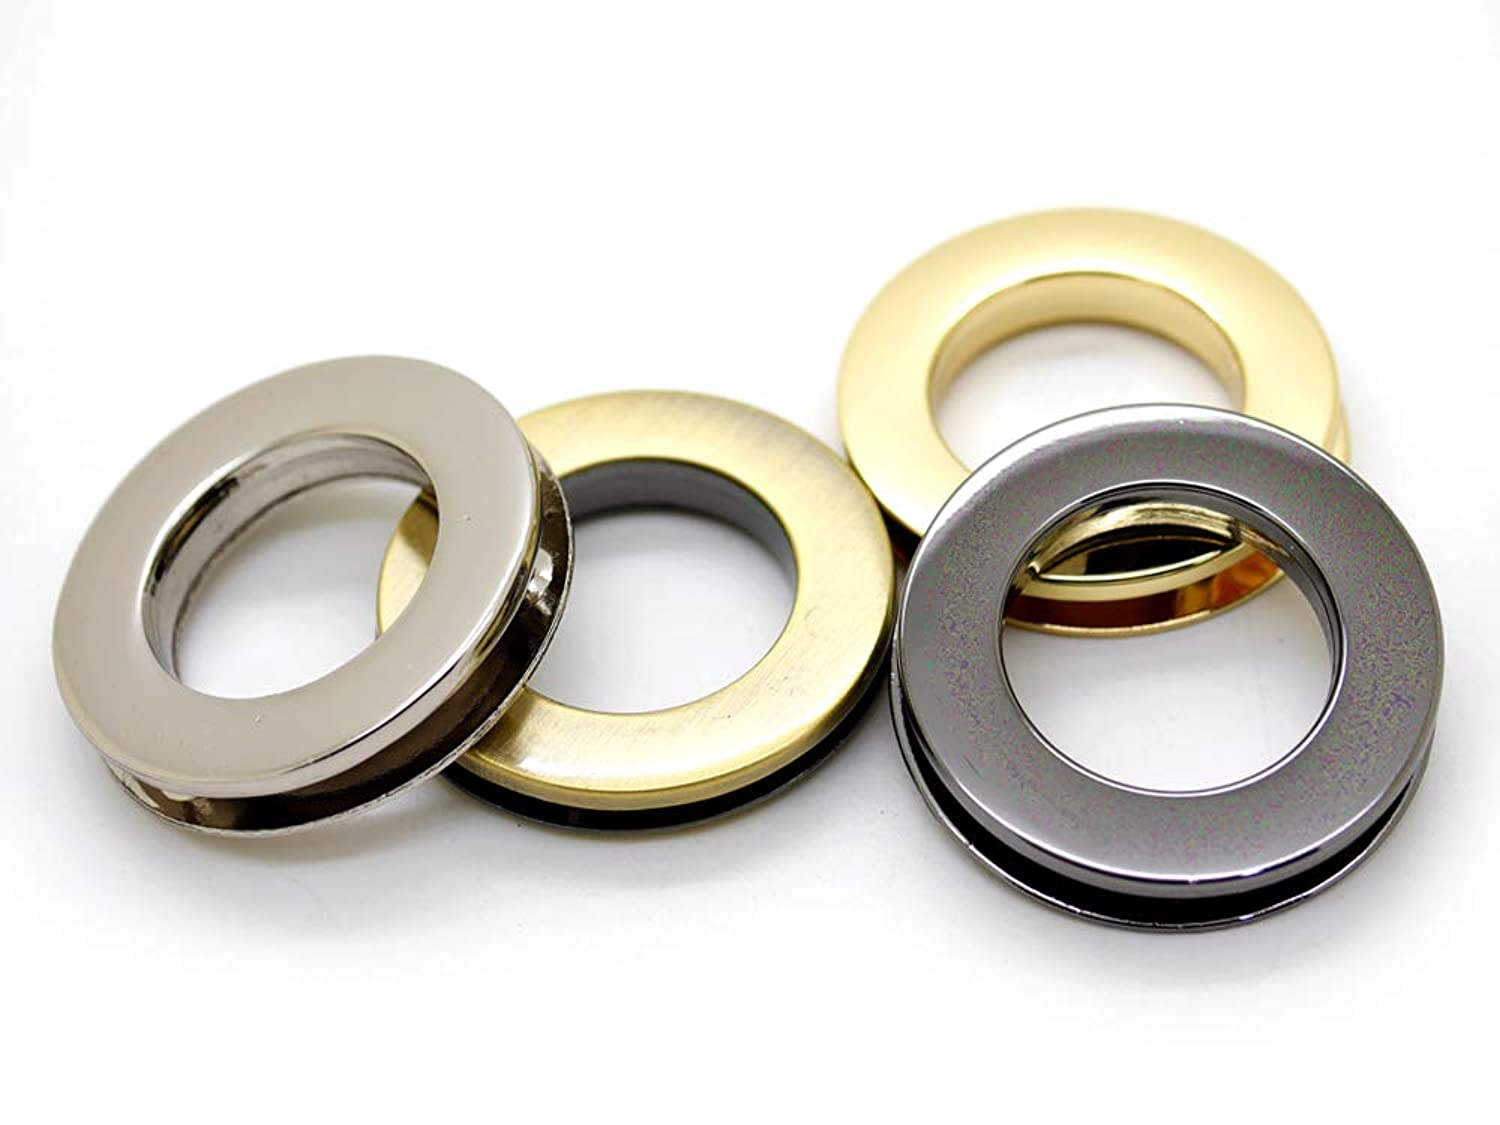 CRAFTMEmore 4pcs Metal Screw O-Rings Eyelet Round Flat Surface Purse Loop Replacement Leather Accessories (Brushed Brass, 1 Inch)